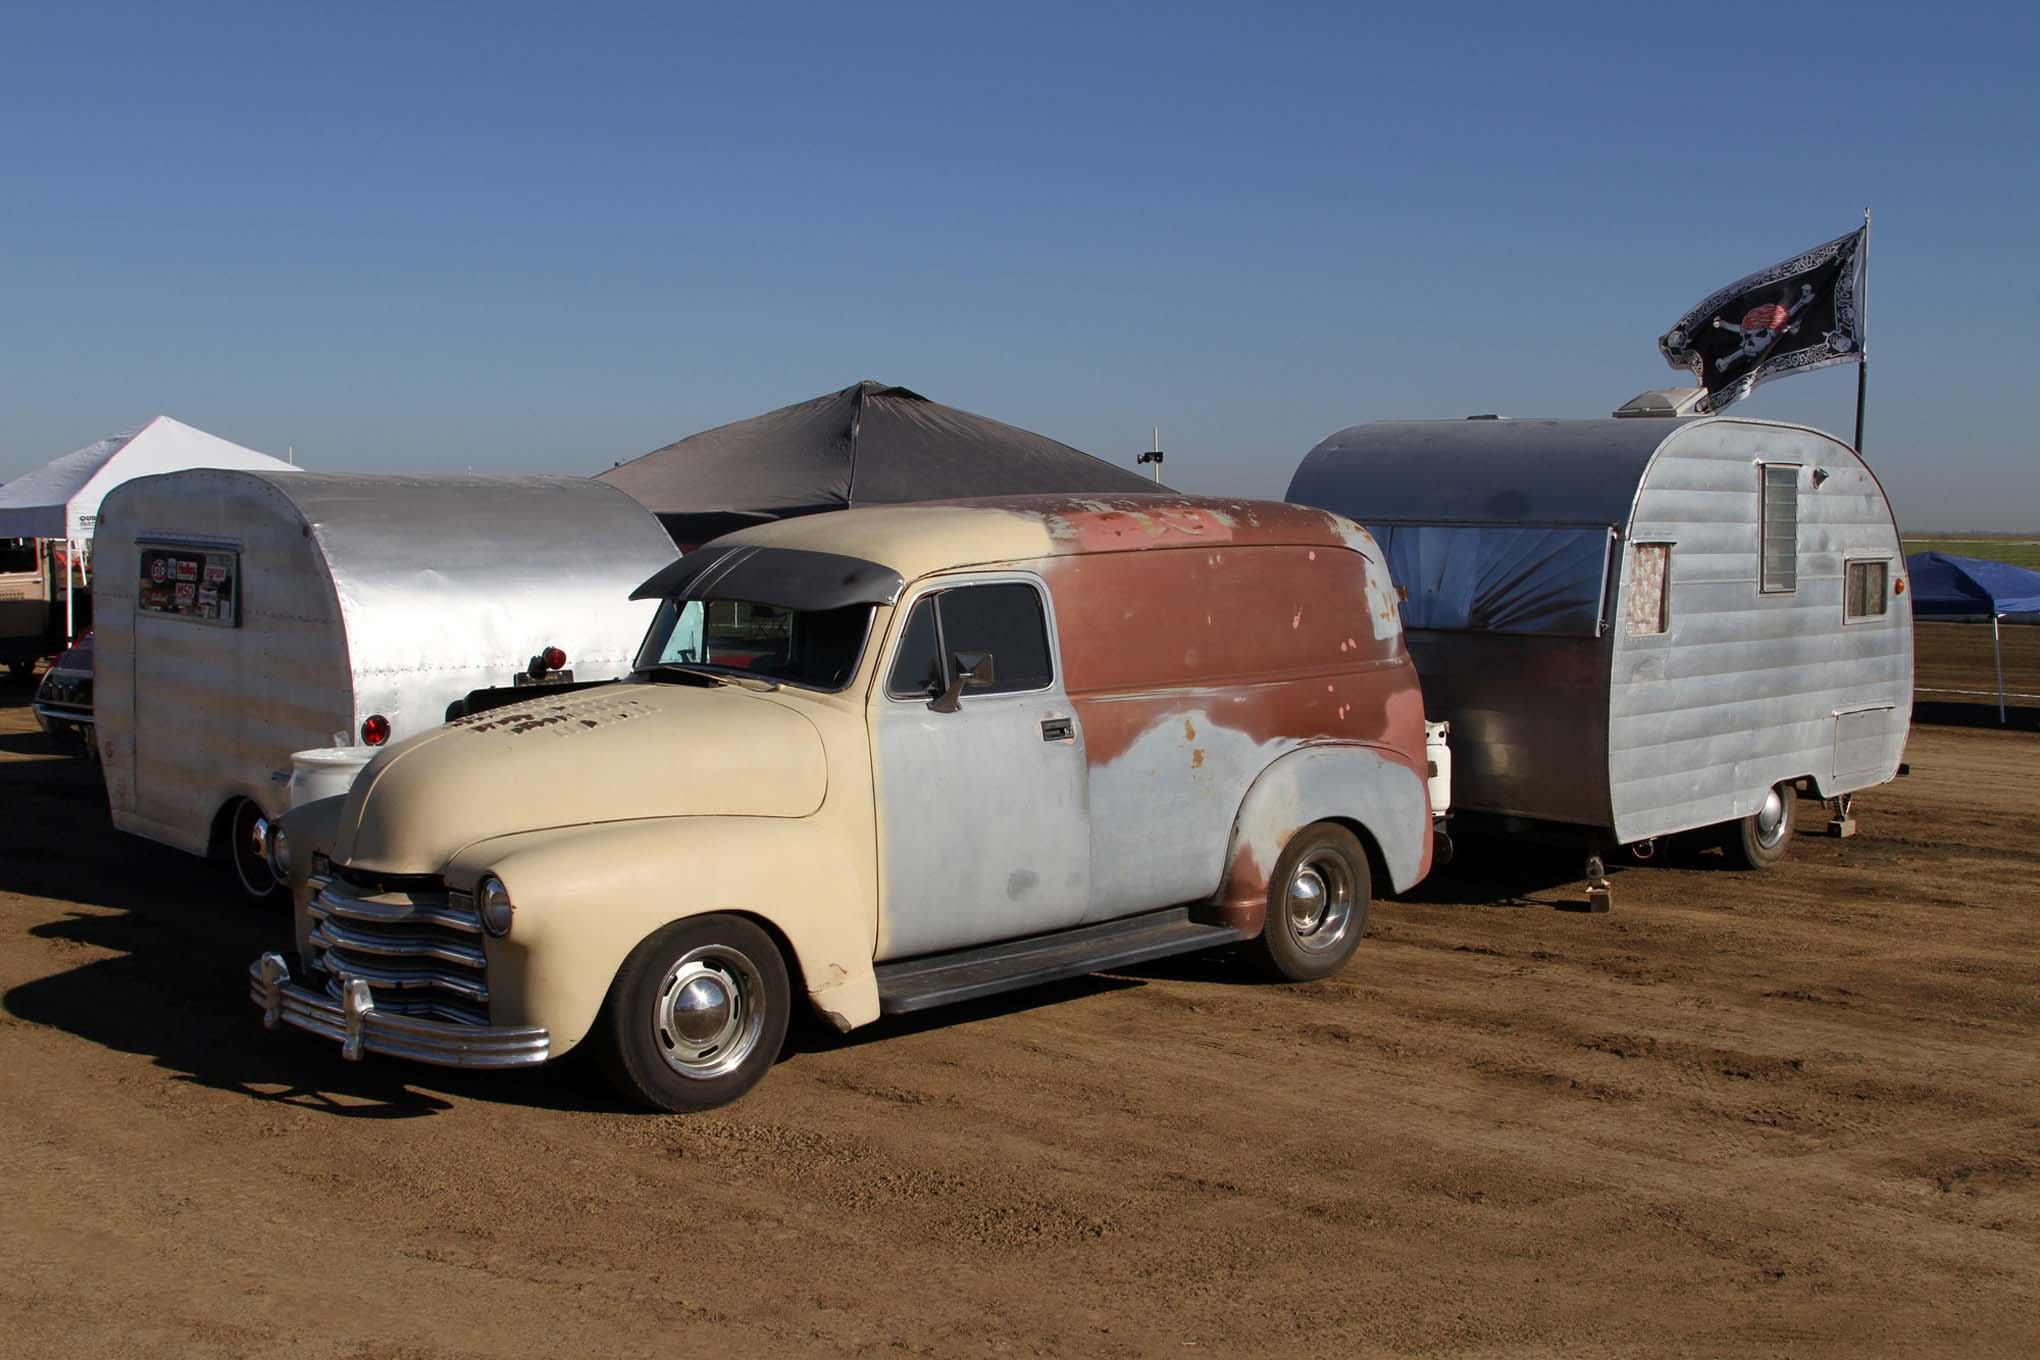 Most of the racers and some spectators camp out at Eagle Field. There are some who take it to the next level by bringing out their vintage travel trailers and tow rigs to camp in. The vintage campers get priority parking in the car show.